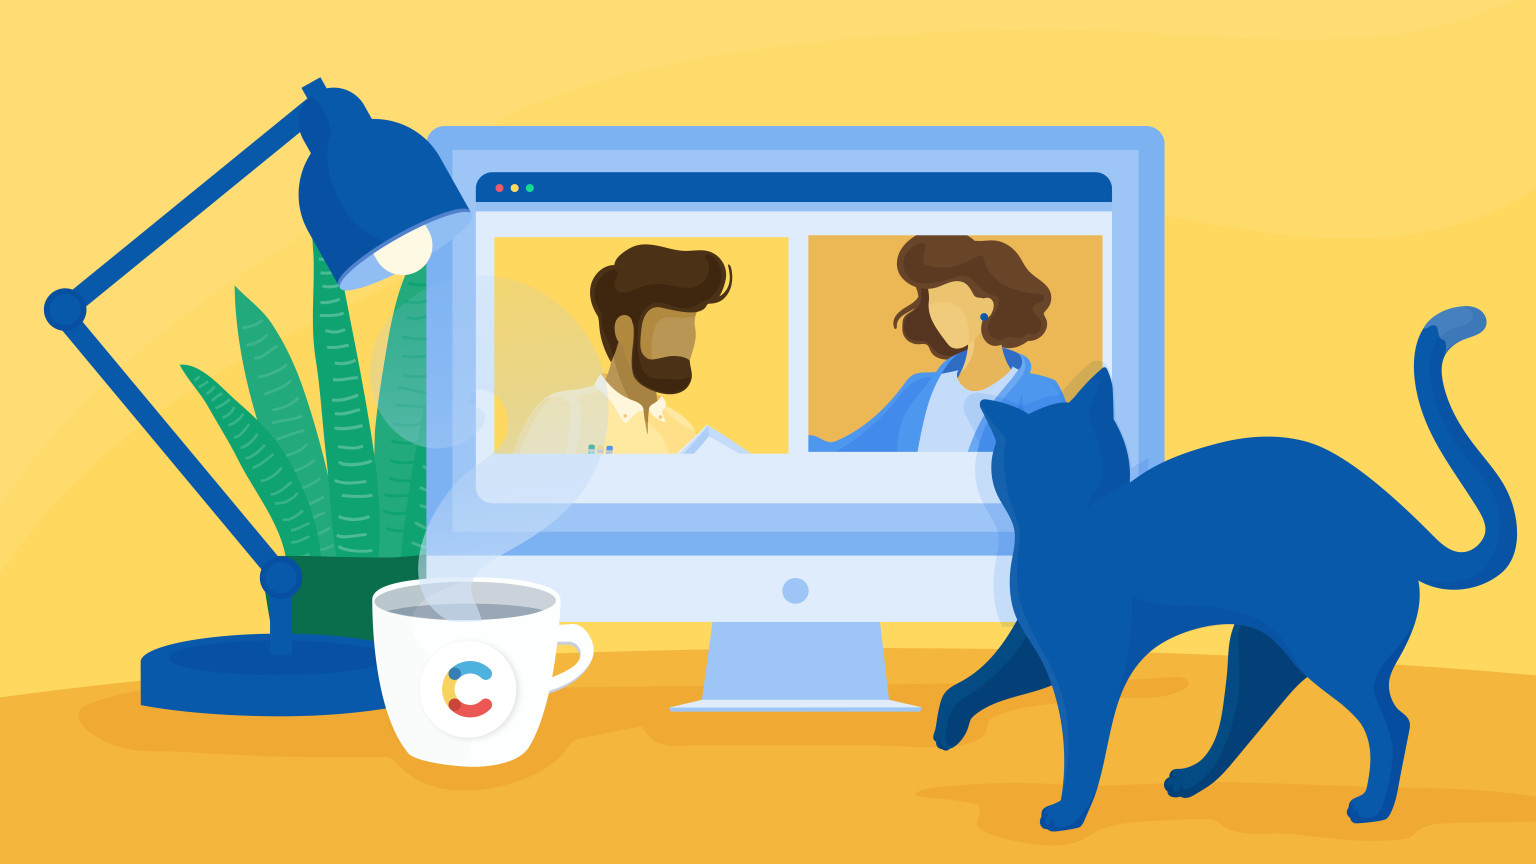 Two people from different companies talking to each other through video call, with a cat in the foreground